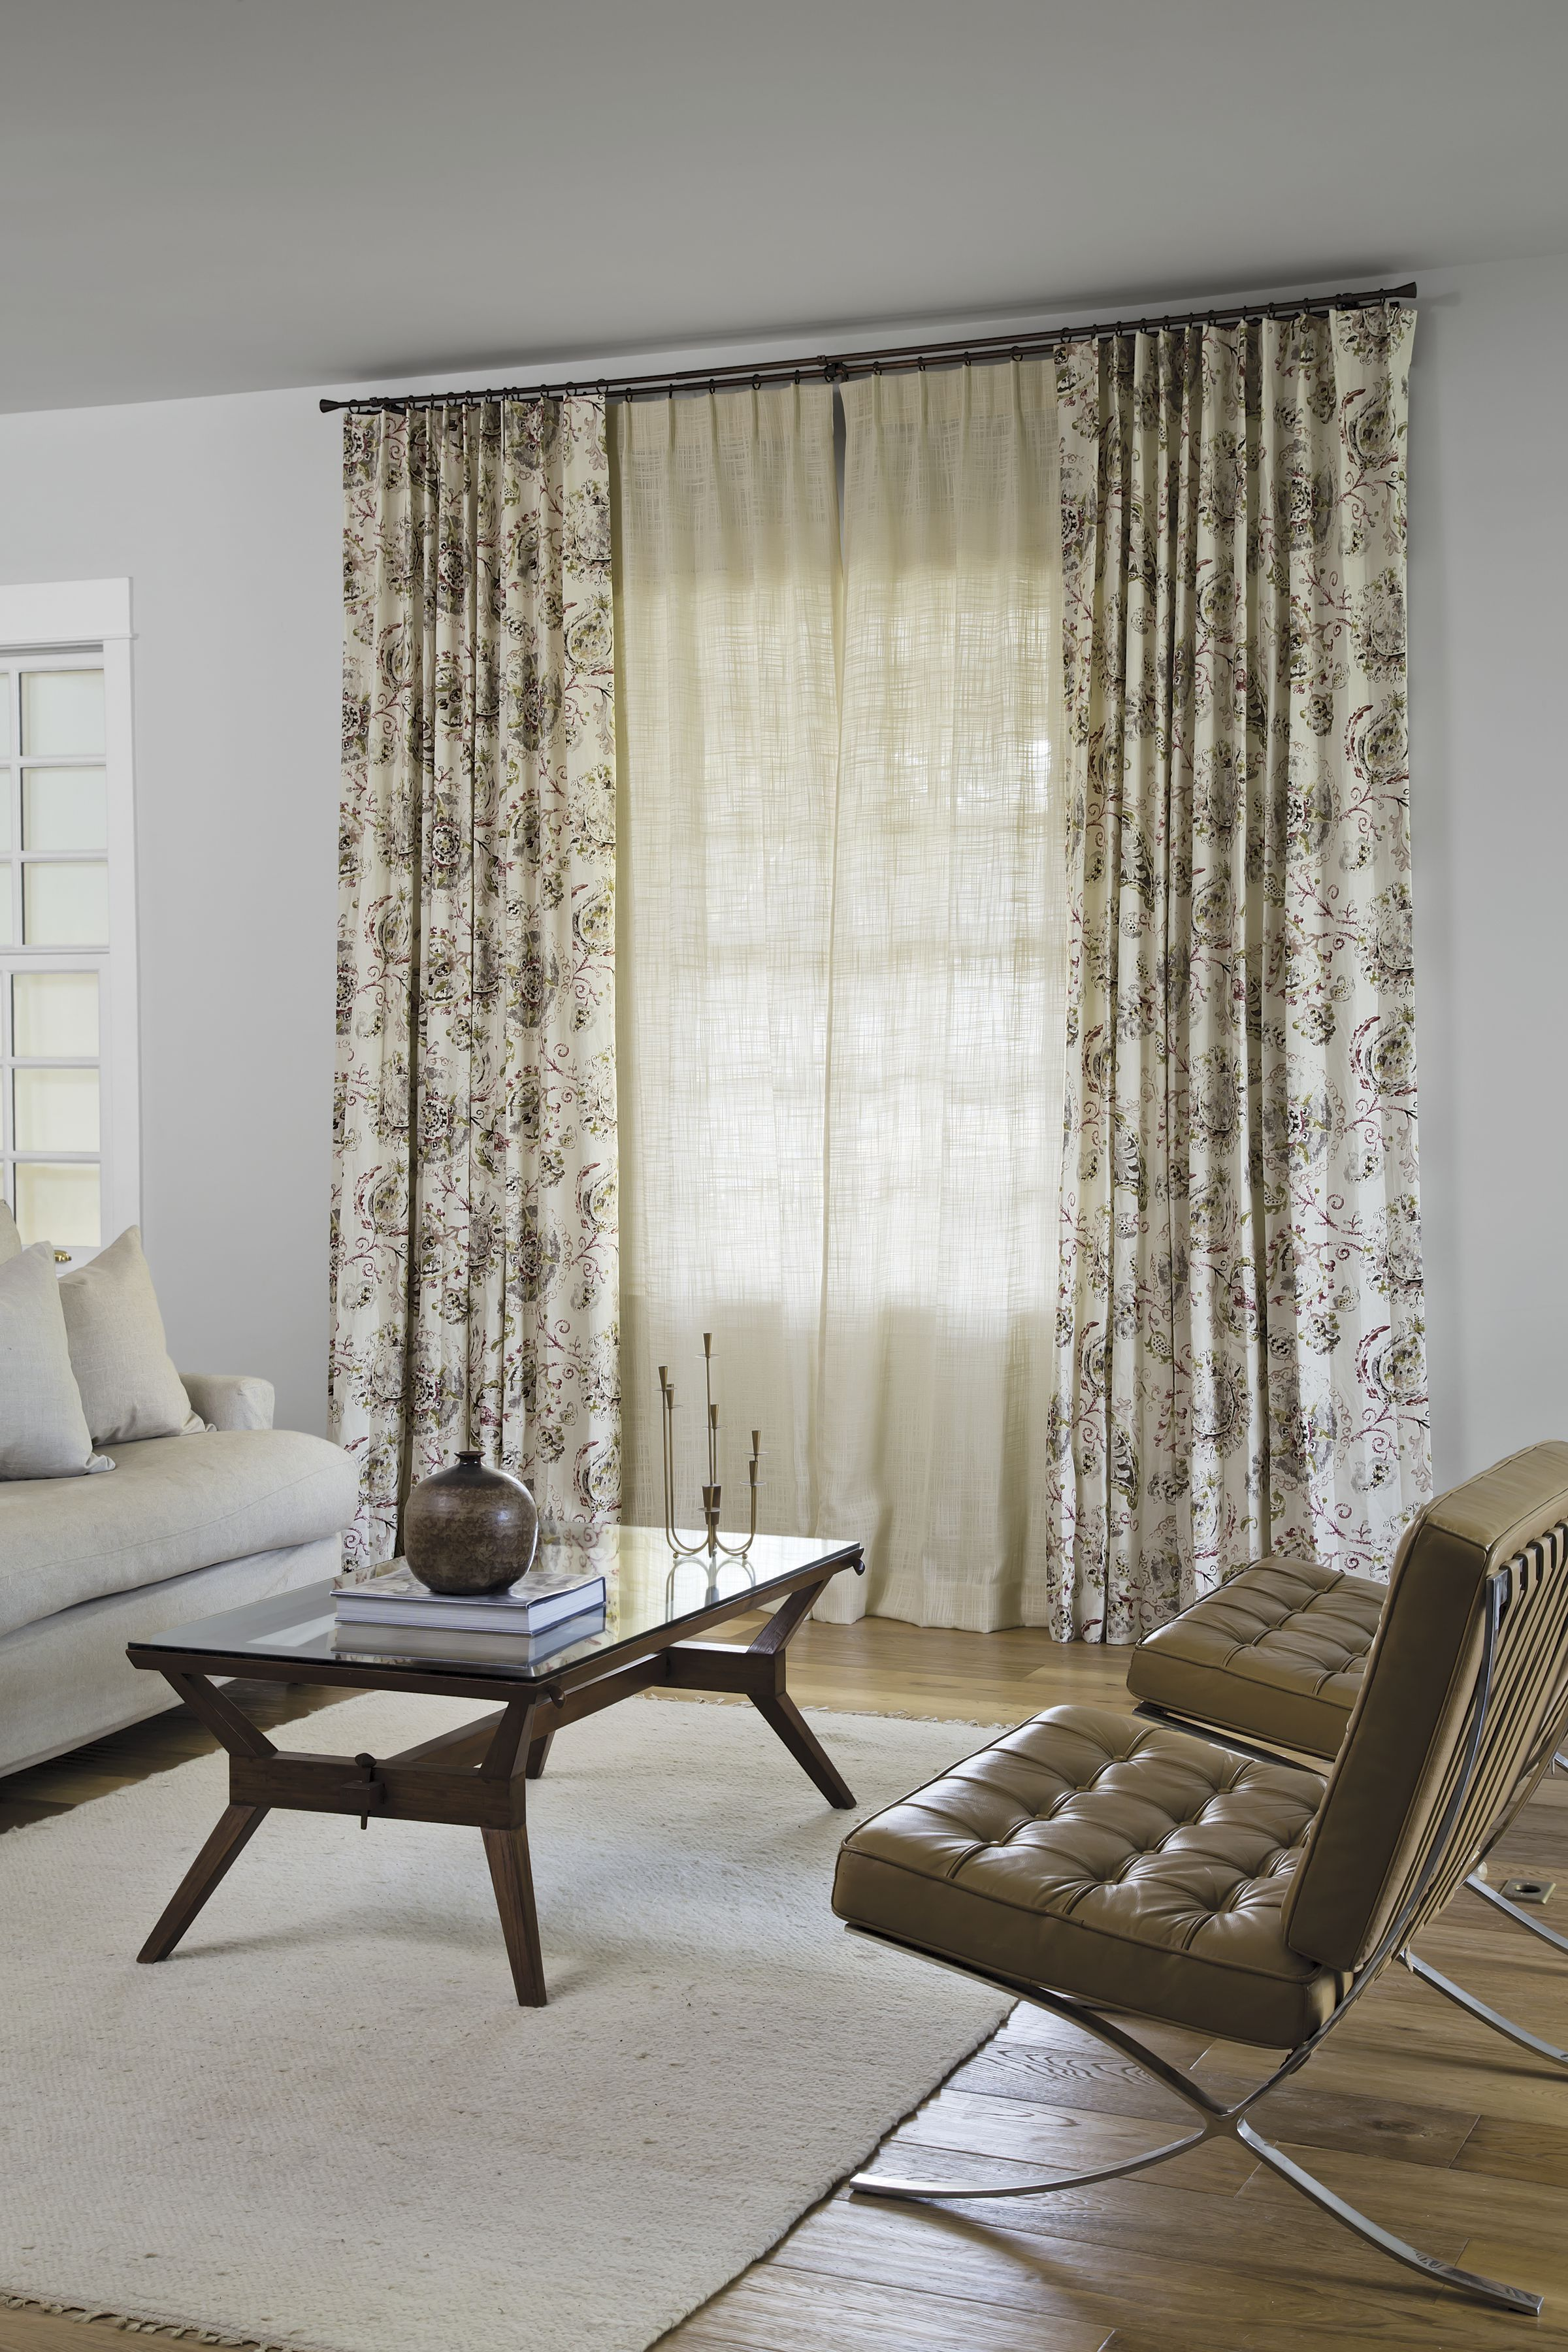 century modern past beautifully the mid blend living images room to curtain curtains ideas